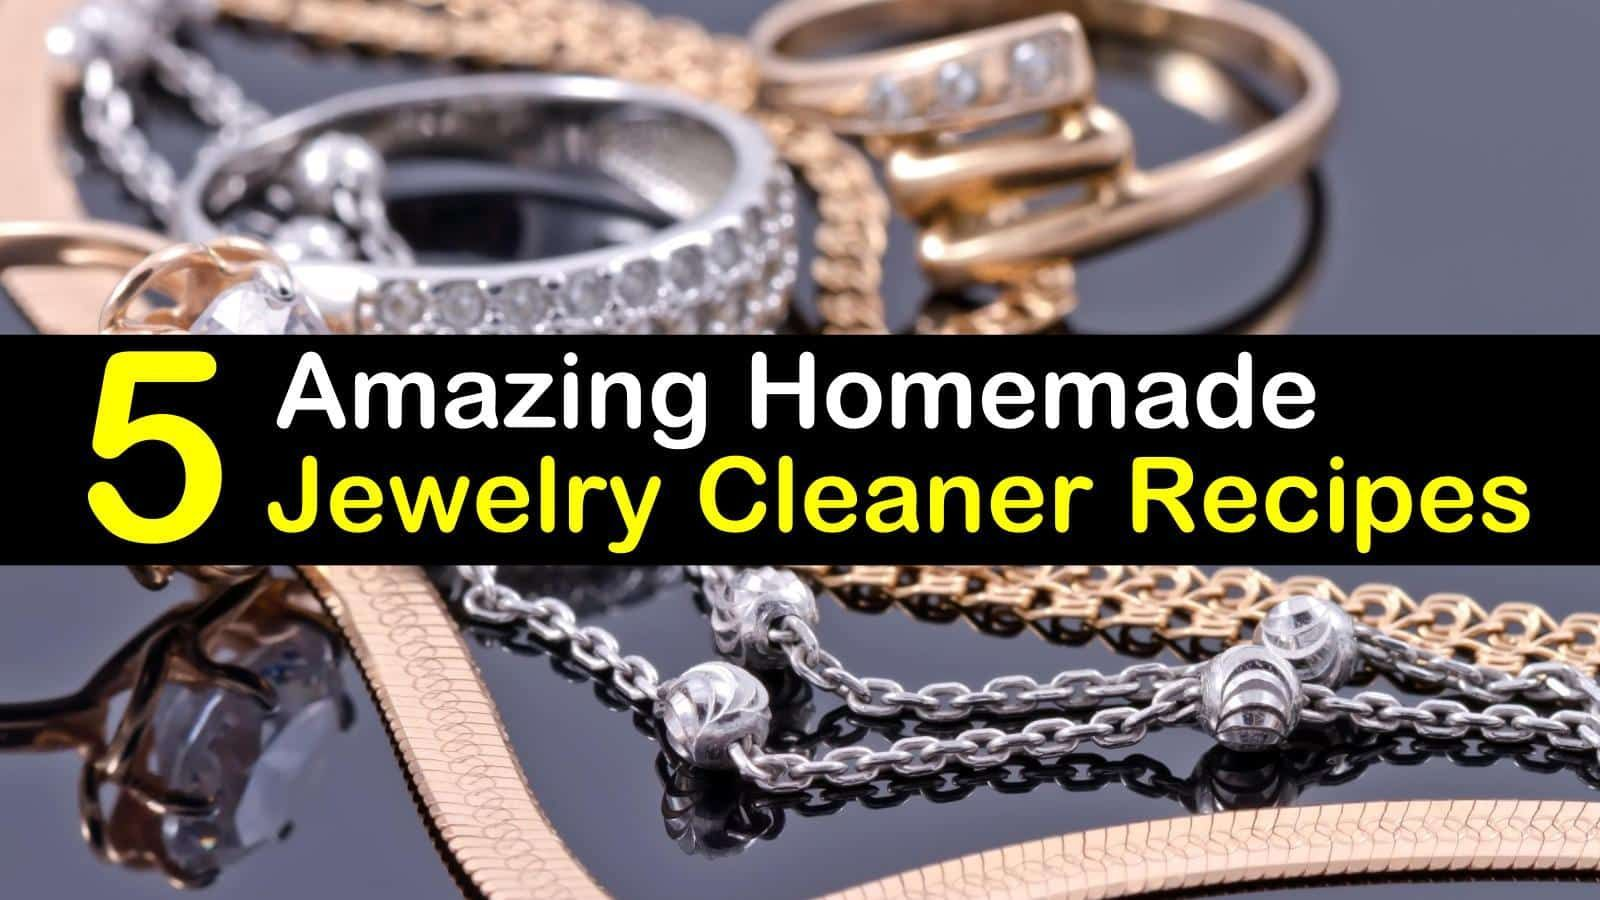 Cleaning jewelry homemade jewelry cleaner titlimg find